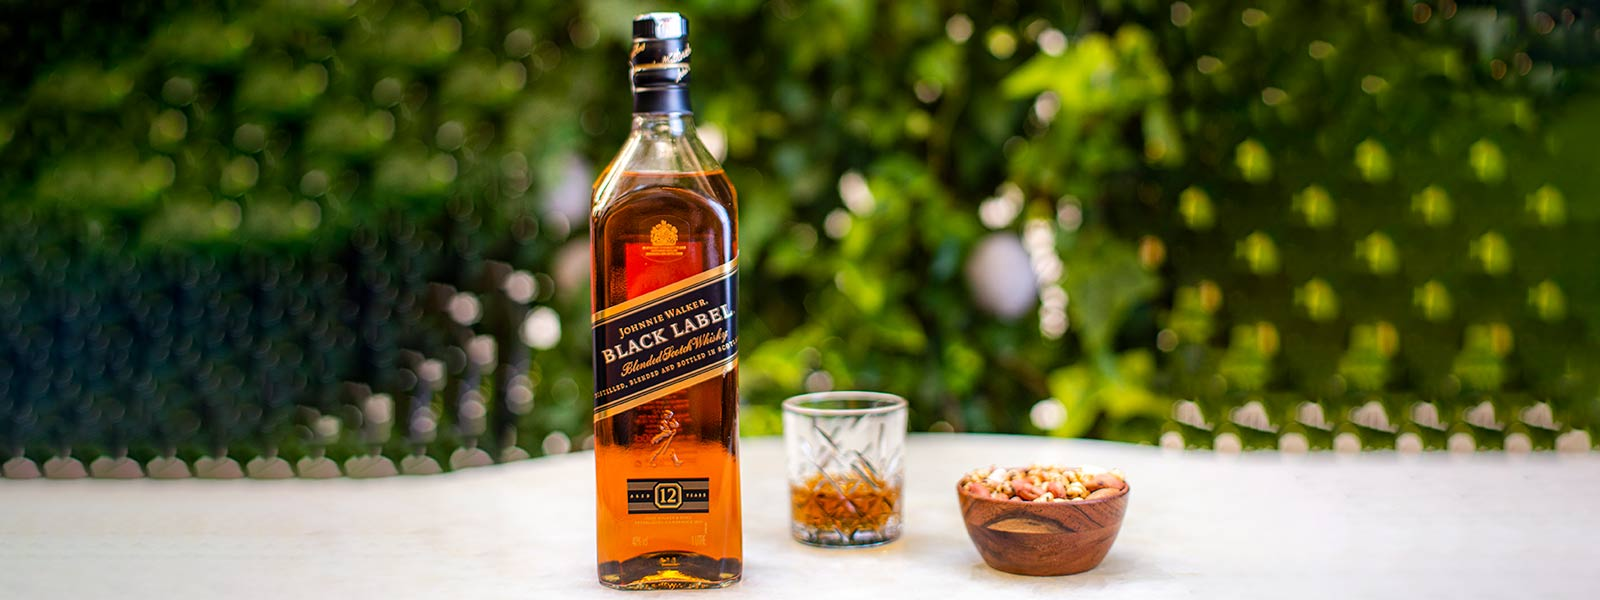 black label premium whisky